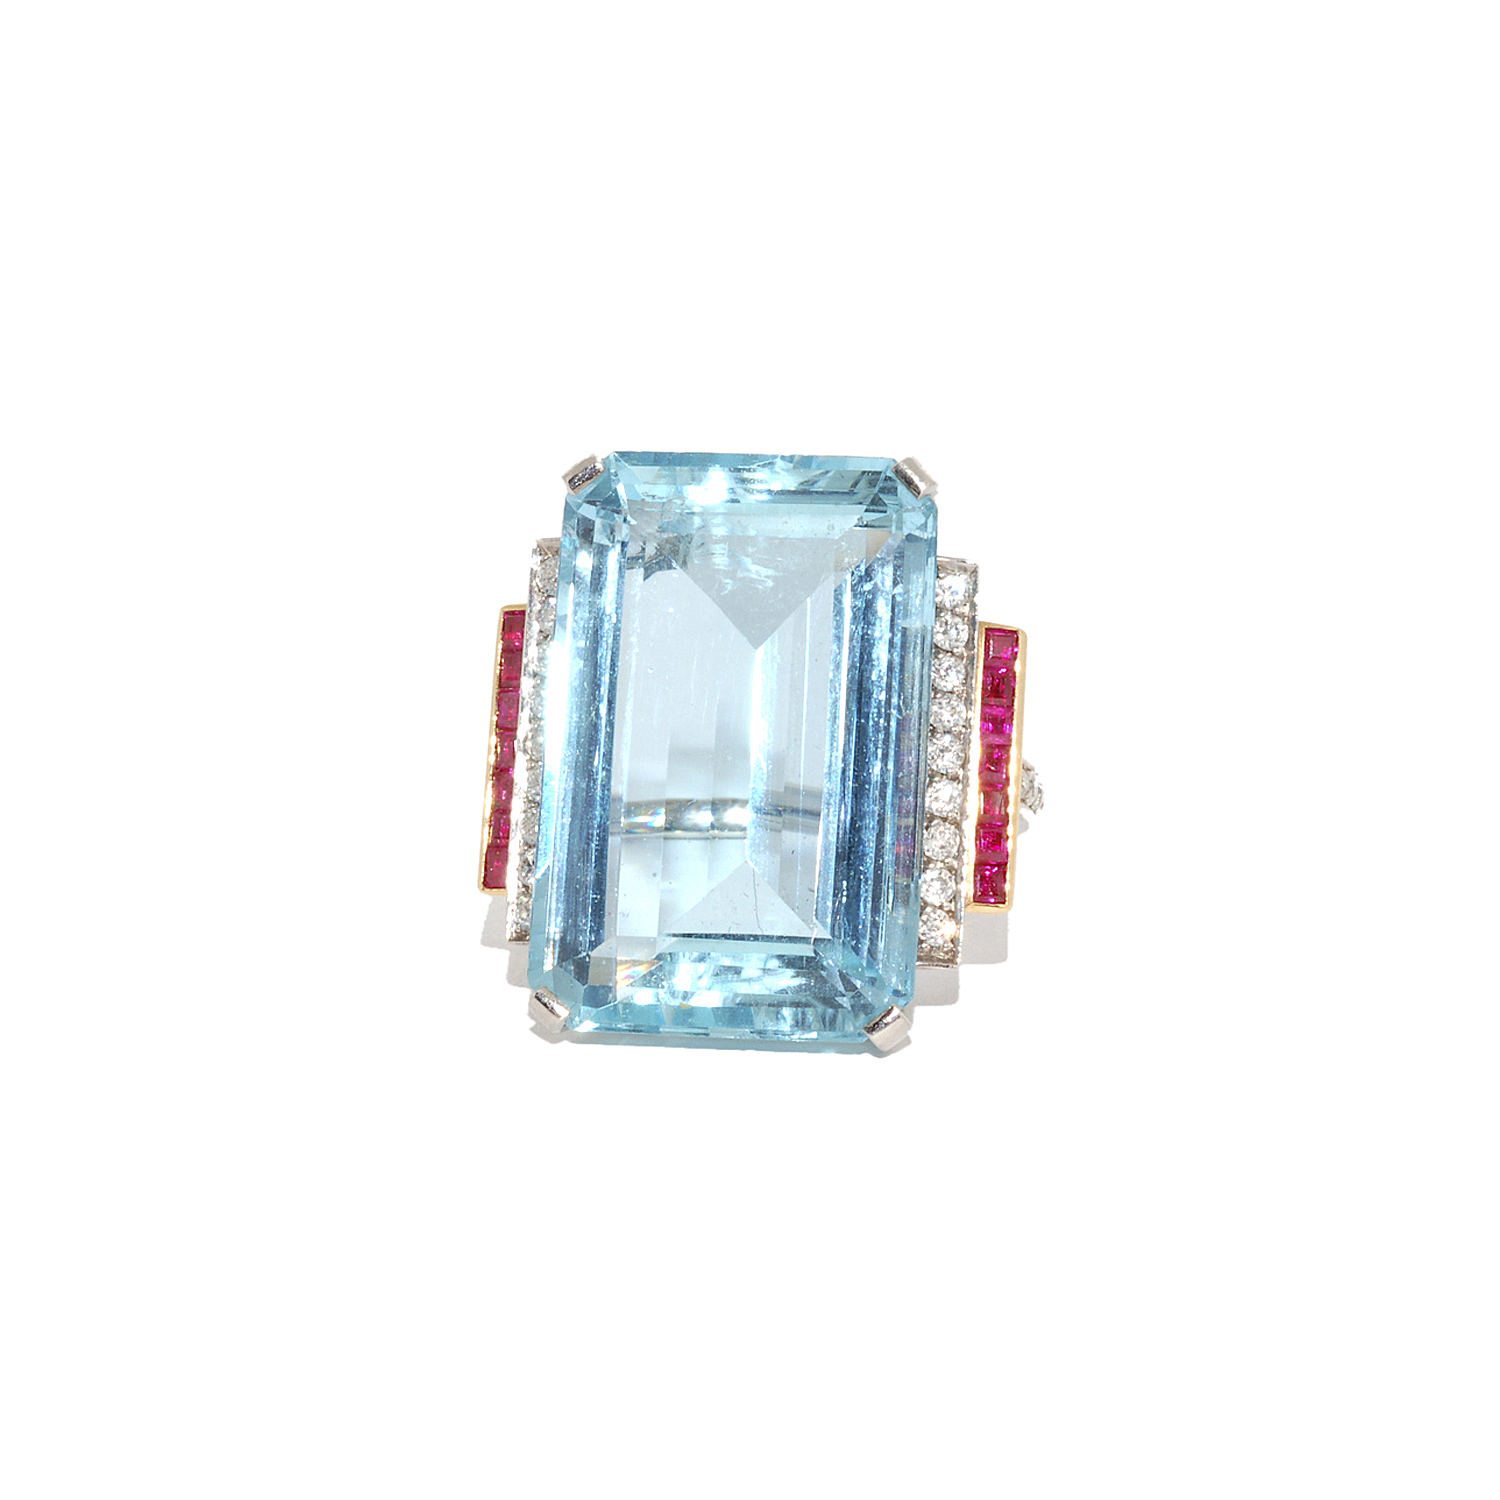 Retro Aquamarine, Ruby and Diamond Cocktail Ring Style R-36169-FL-0-0